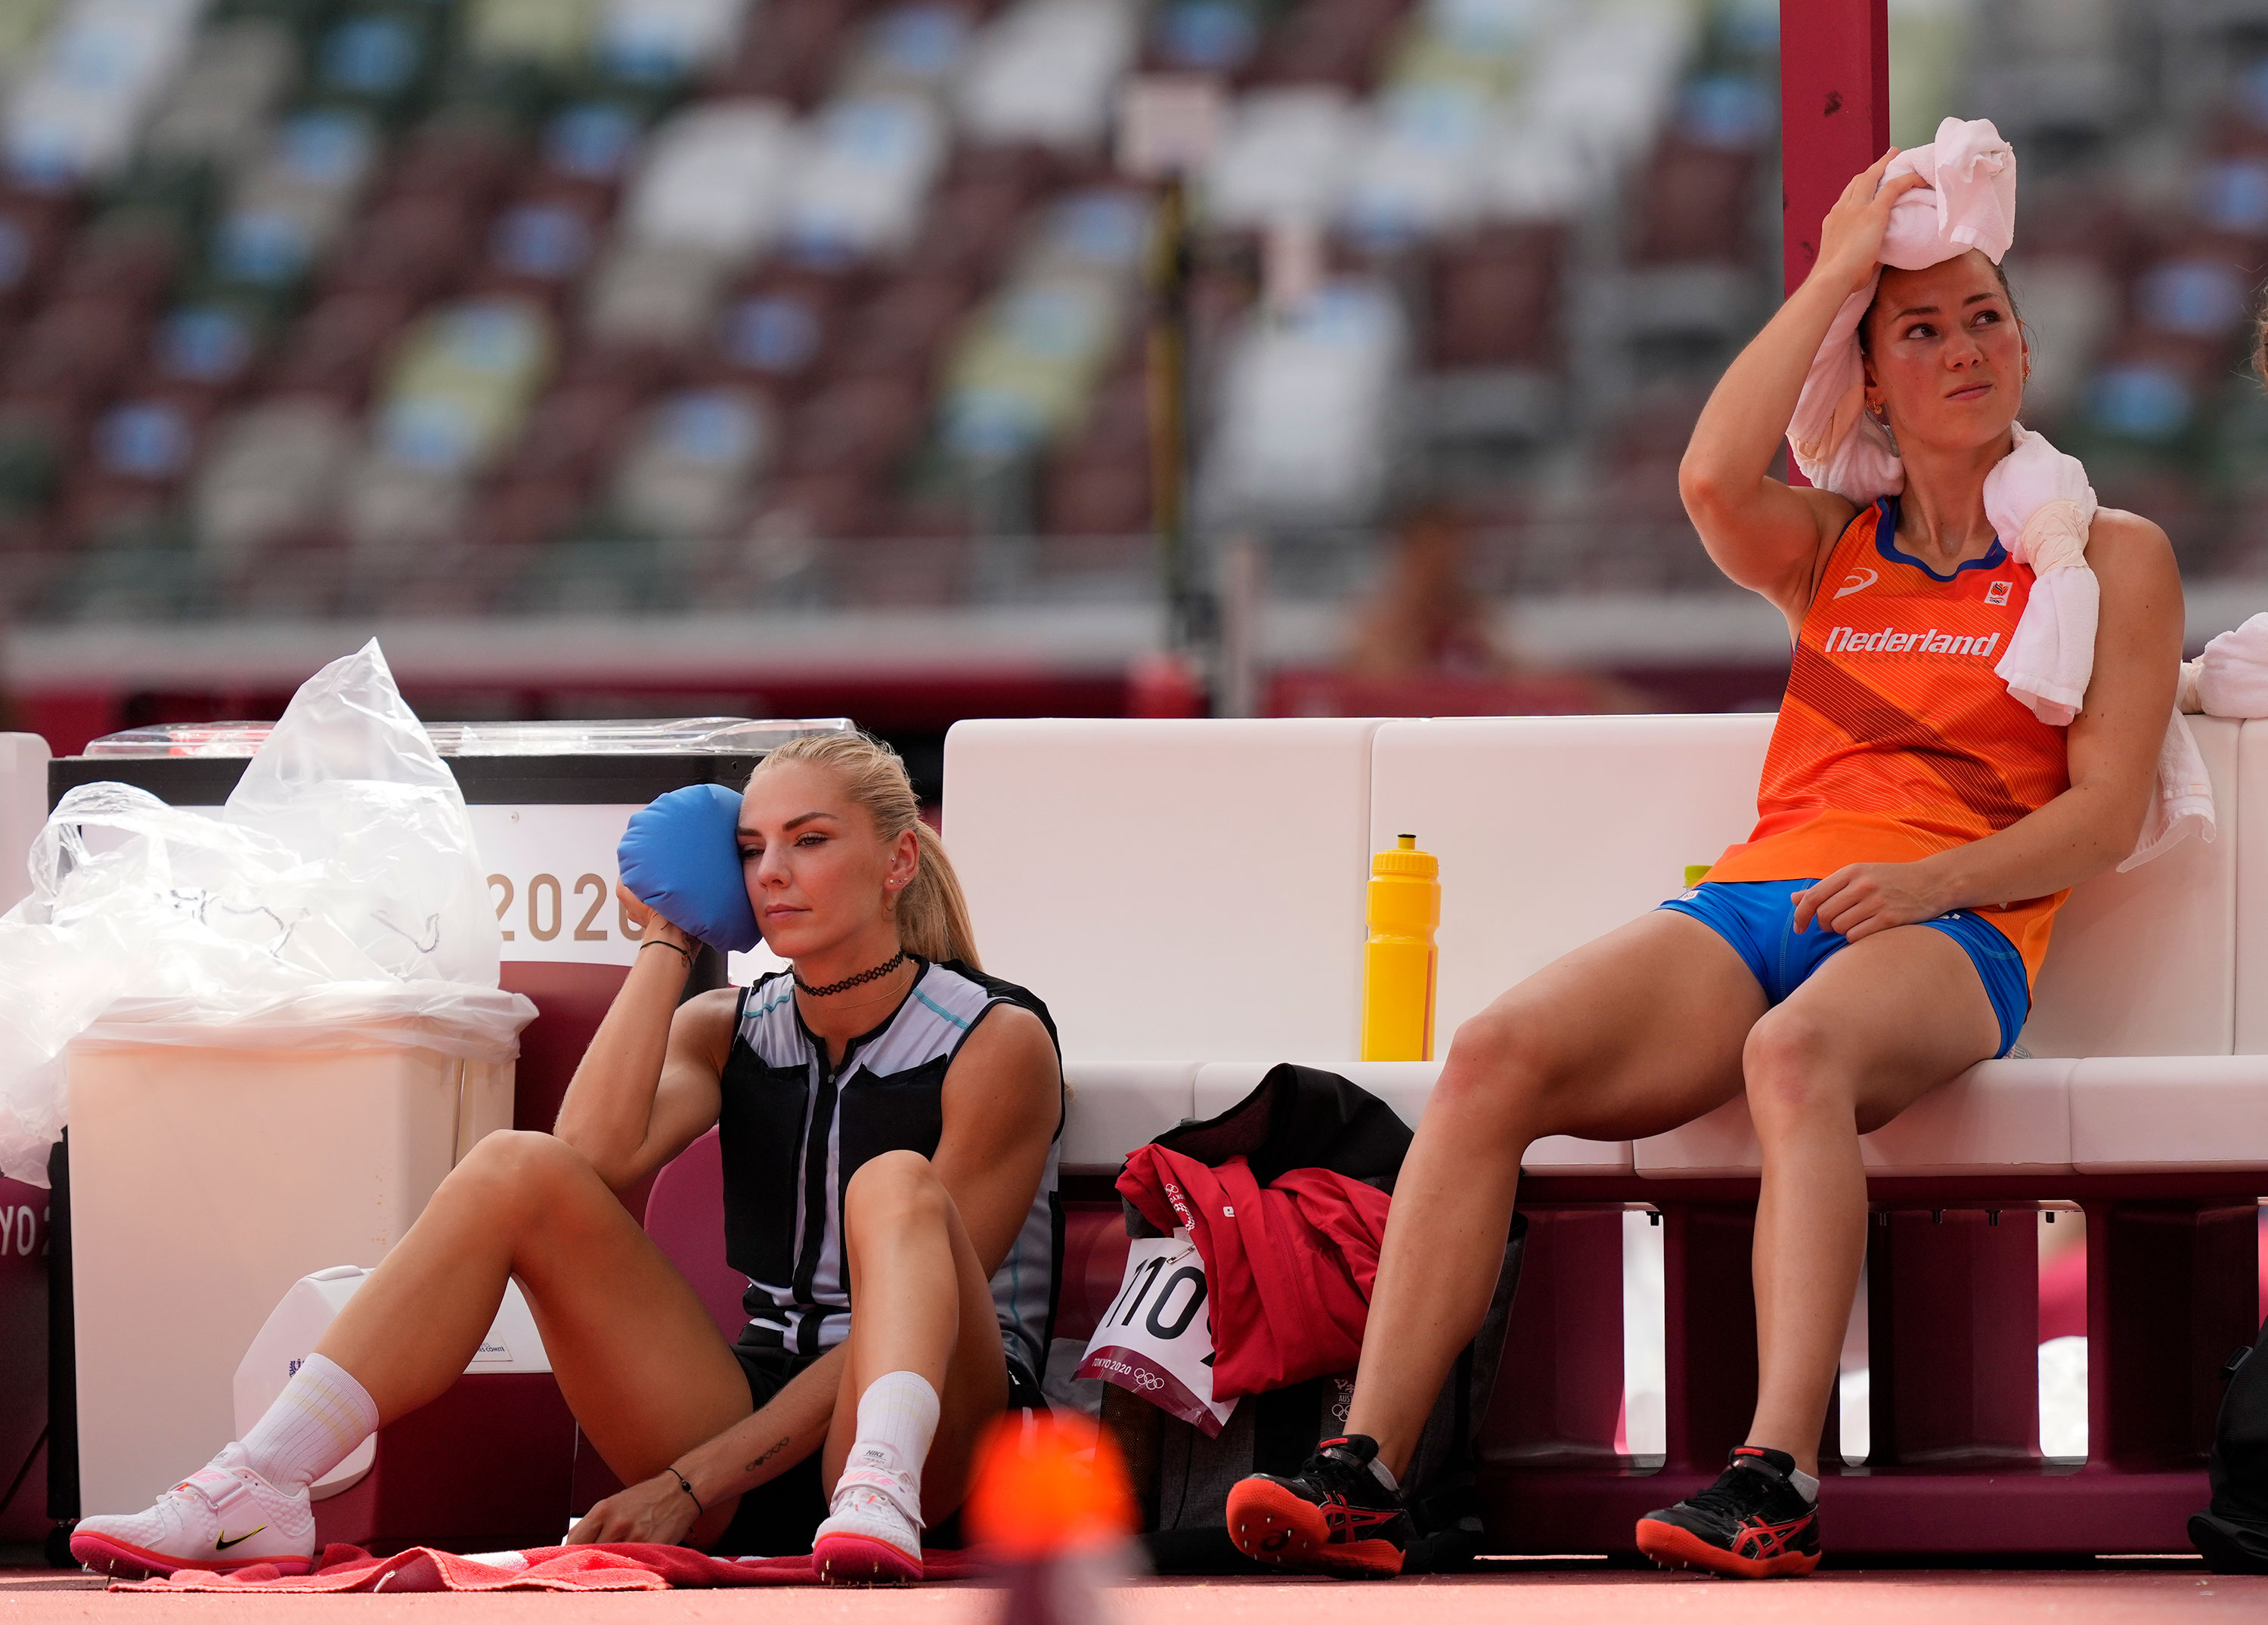 Competitors try to stay cool during the high jump event on August 4.